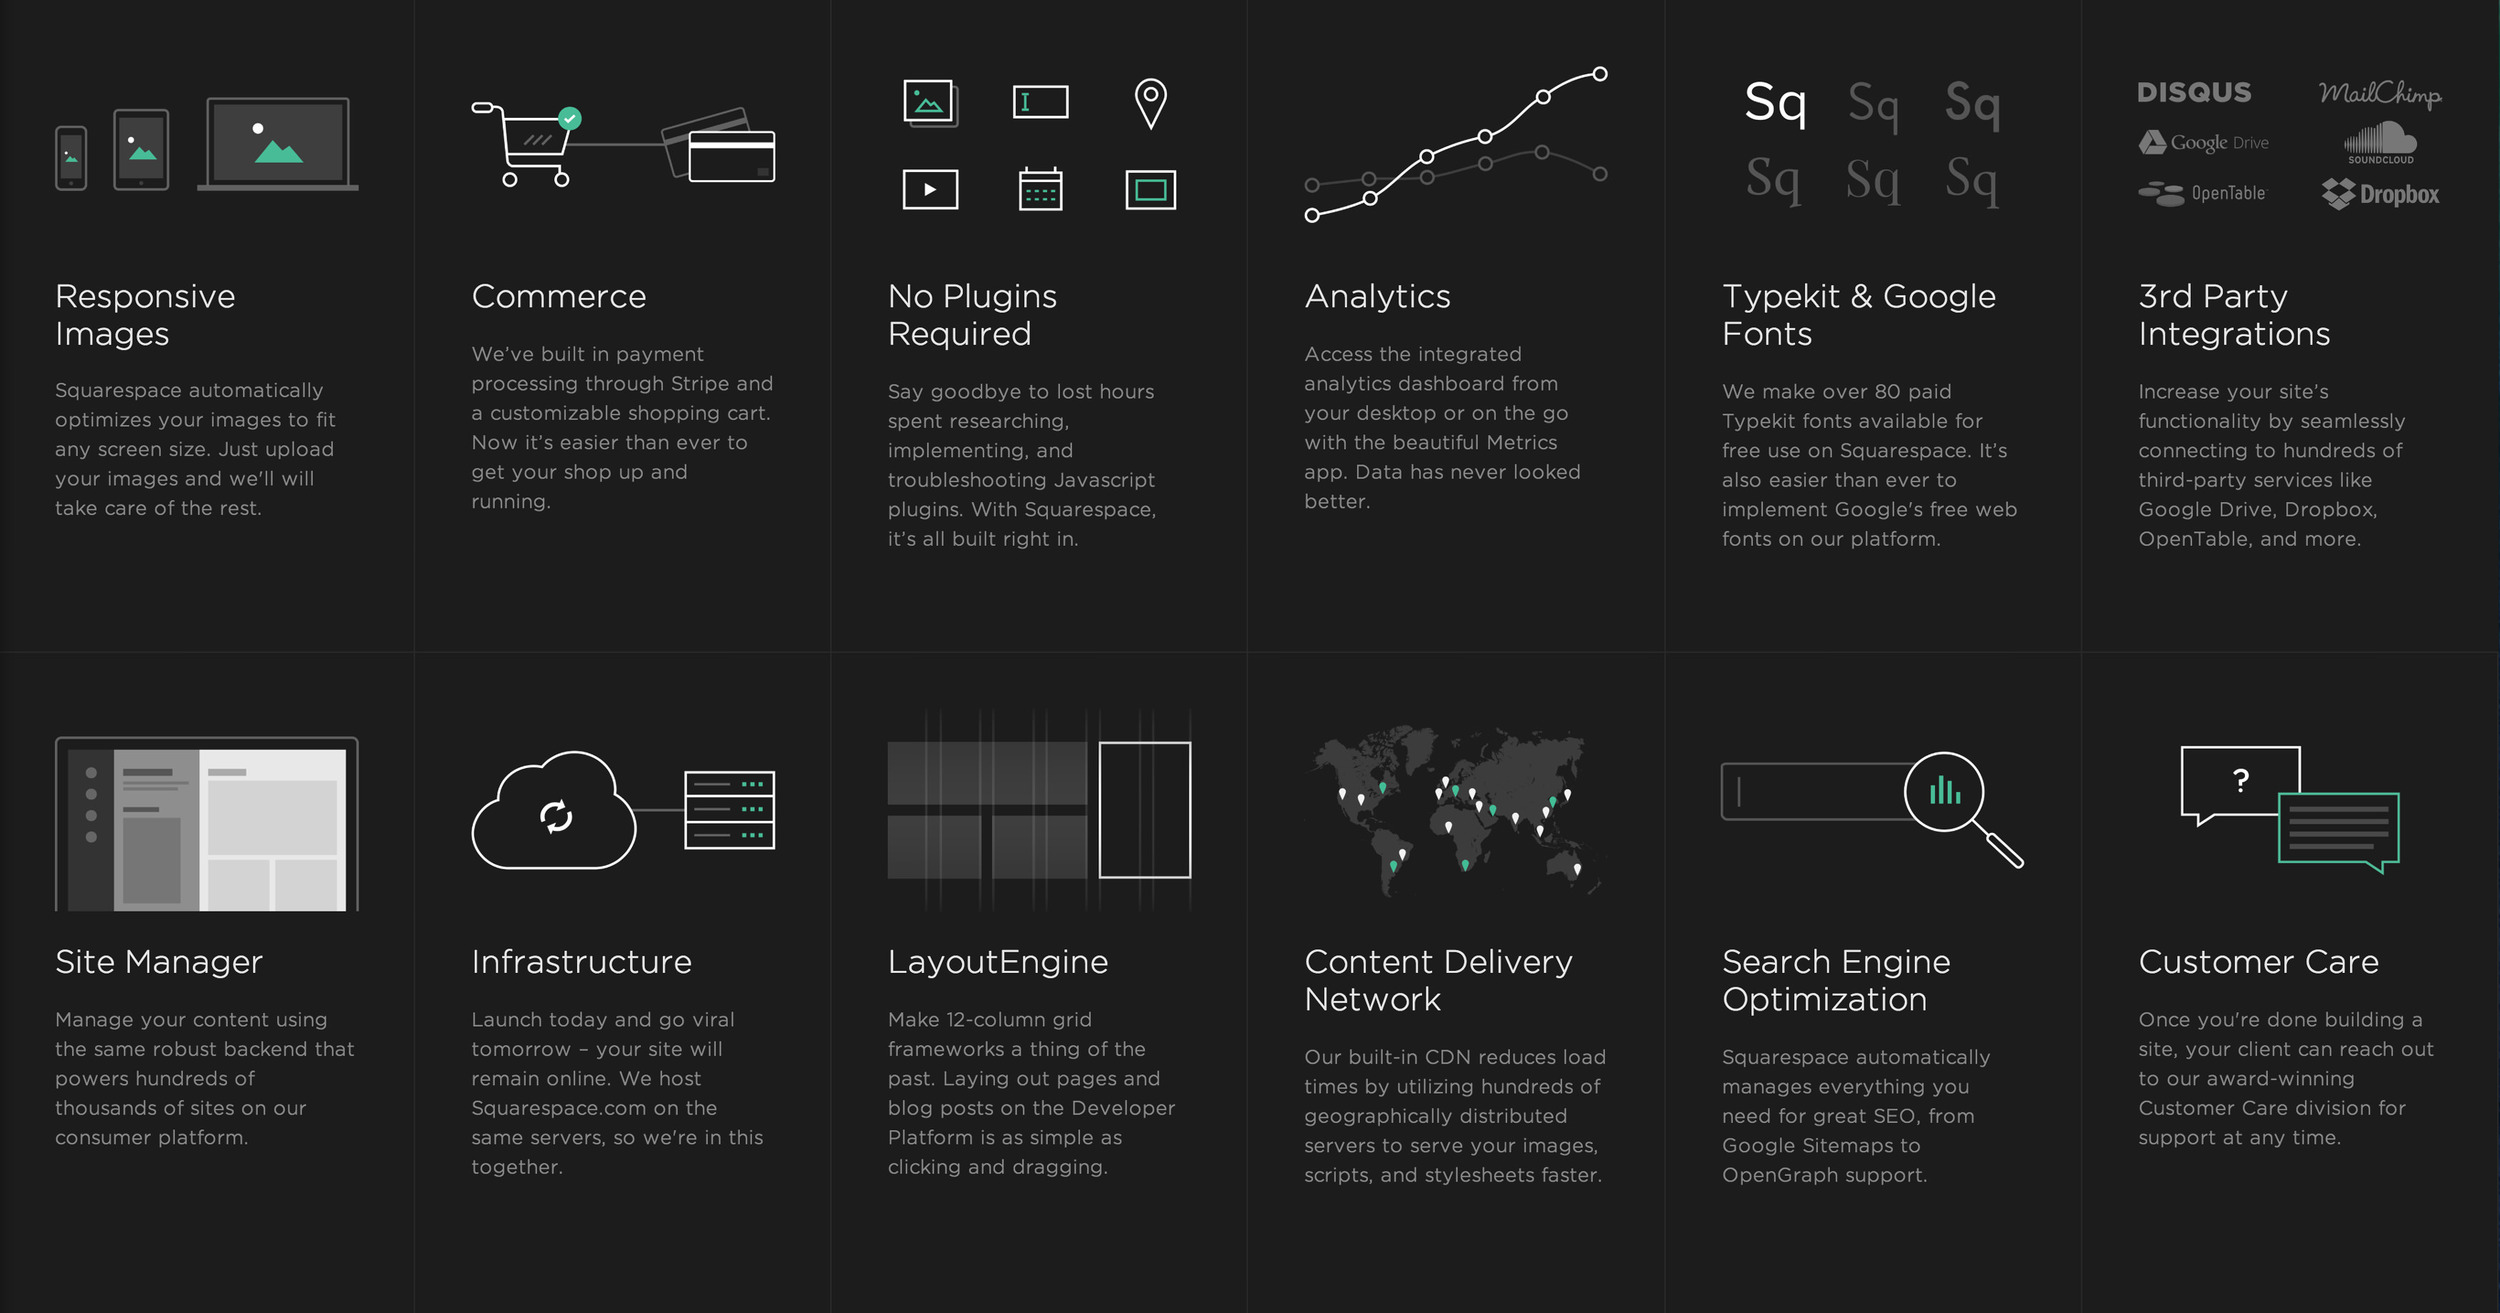 squarespace-developer-platform-features.jpg